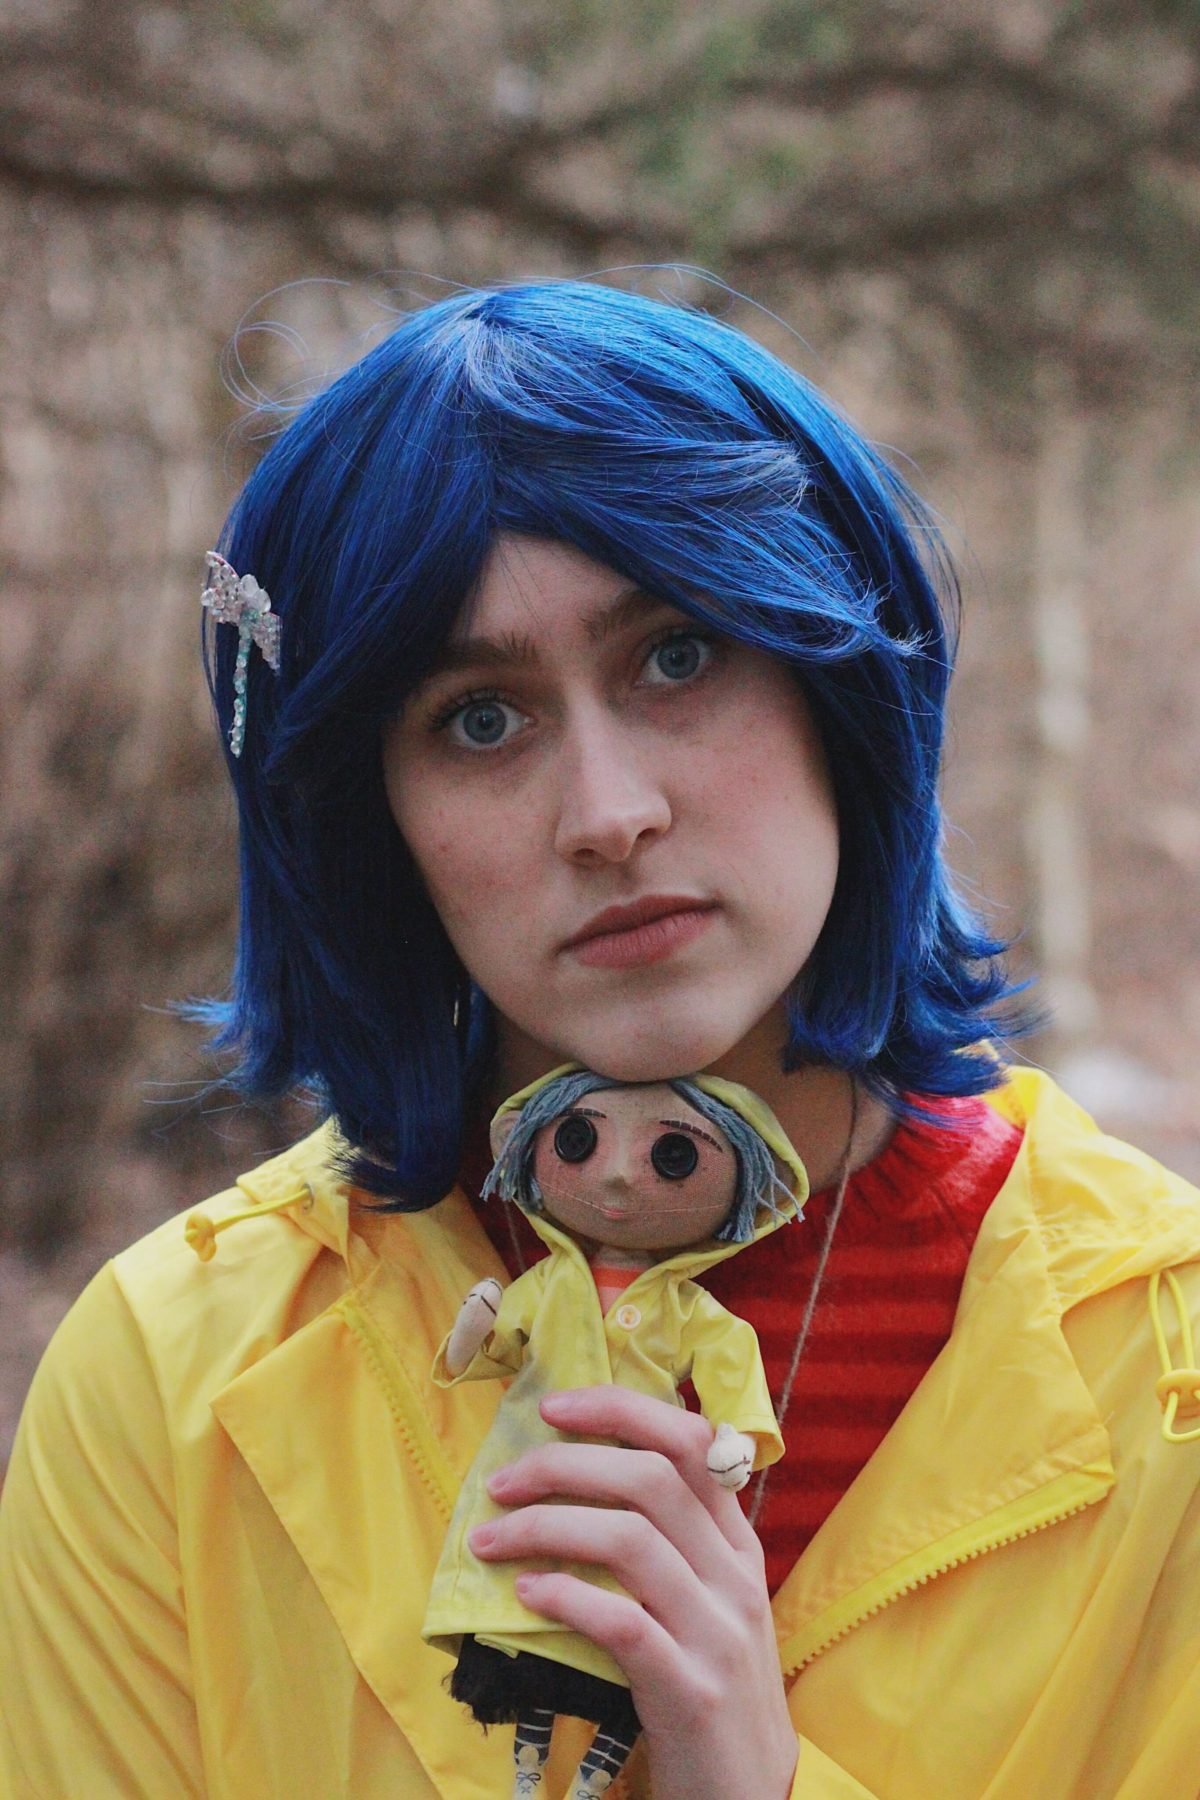 Where To Find The Perfect Wig For Coraline Cosplay